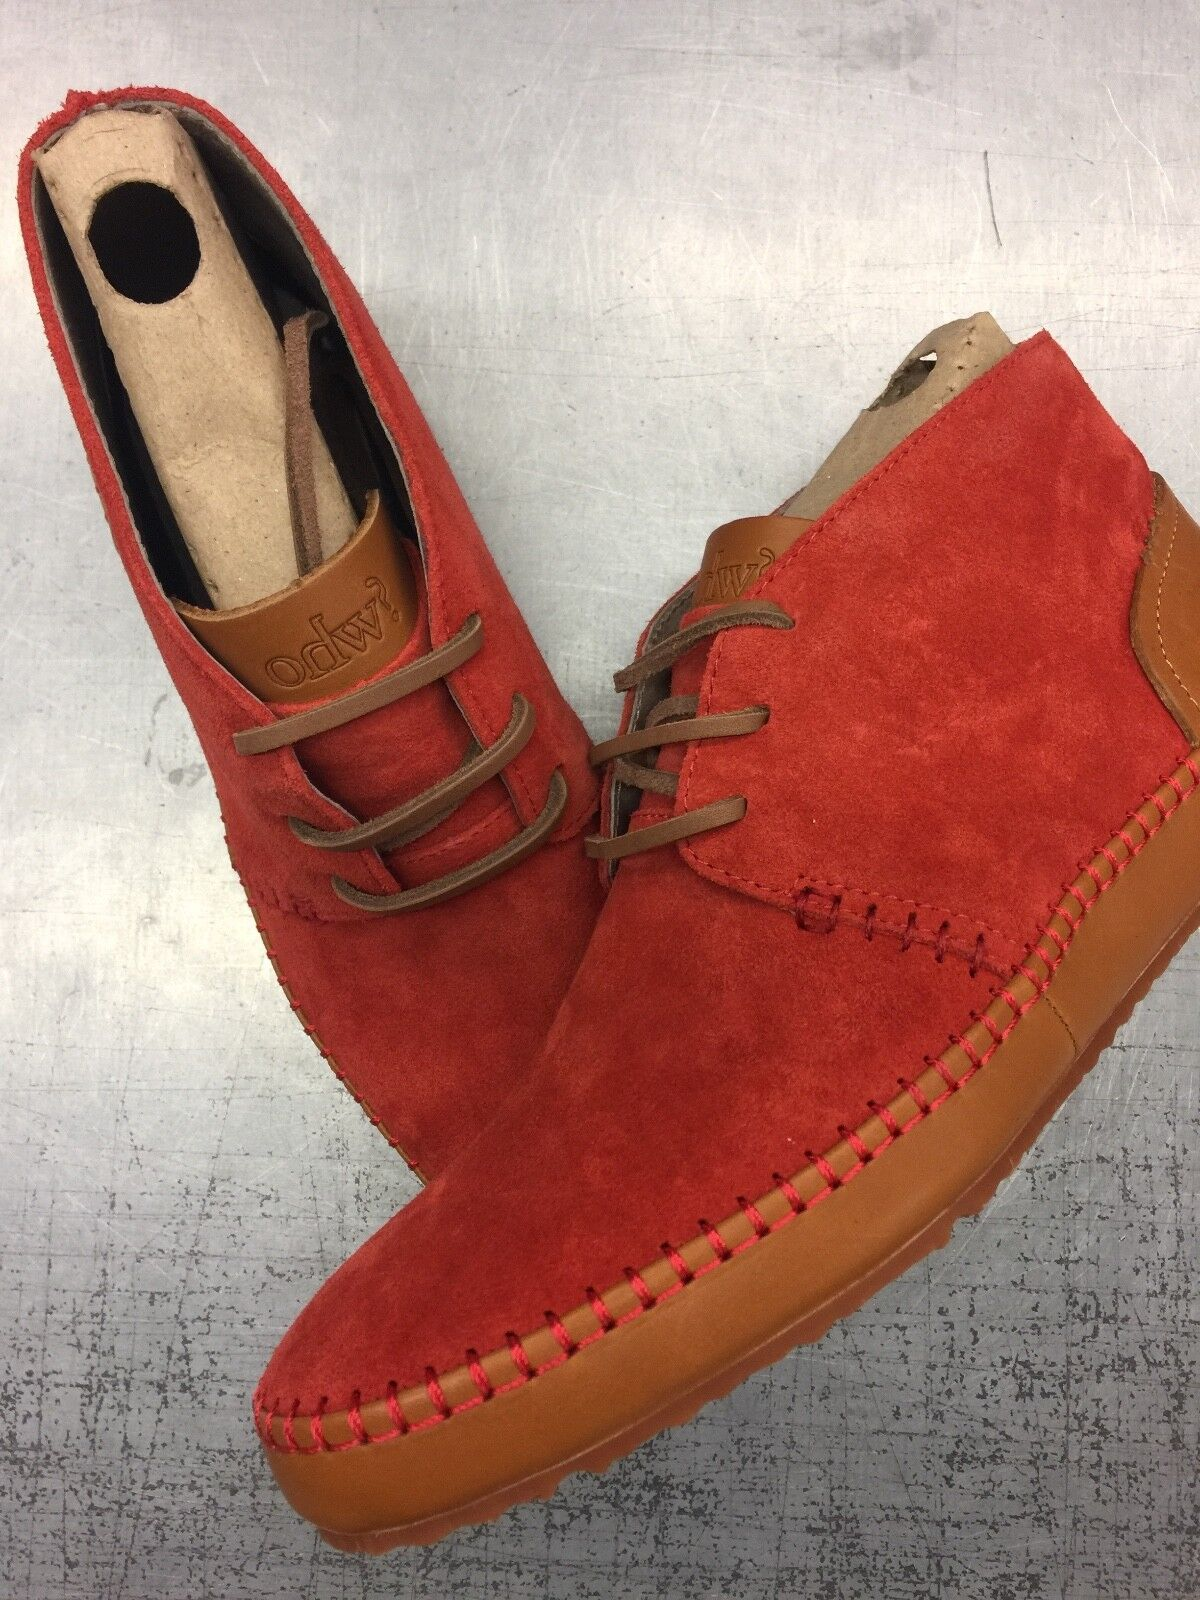 Who? footwear Uomo lifstyle Shoe